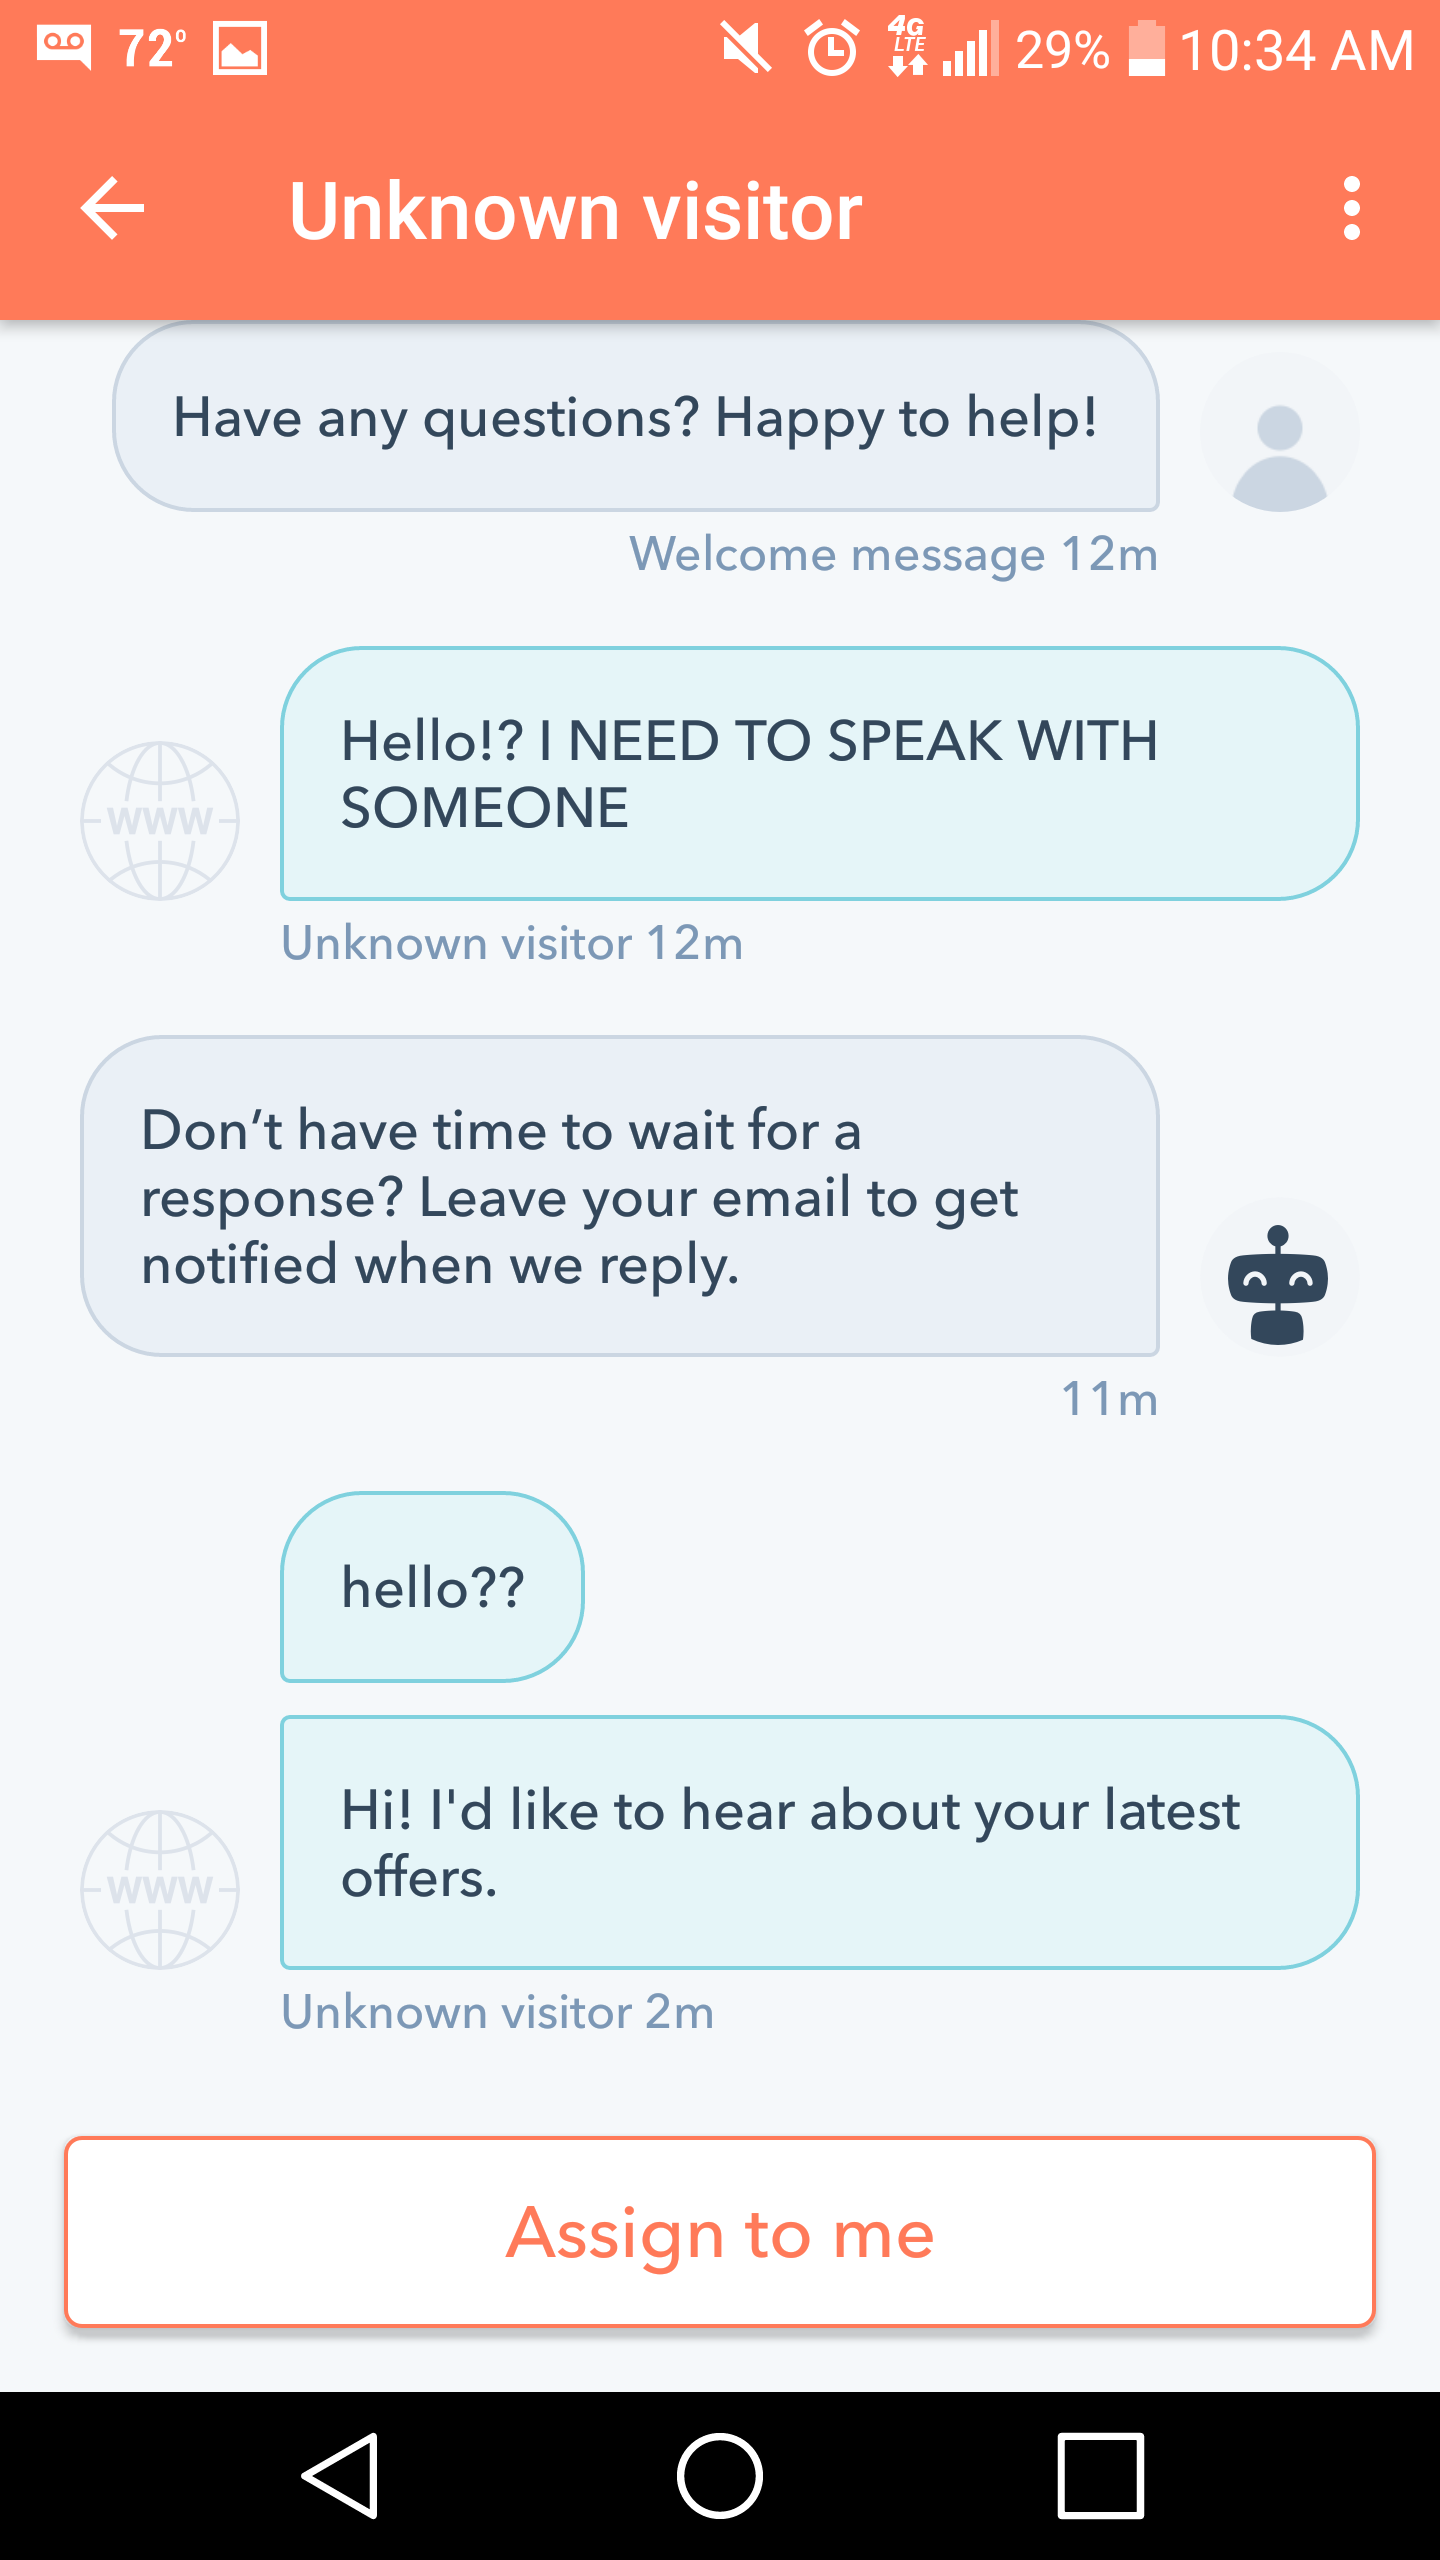 android_assign_conversation